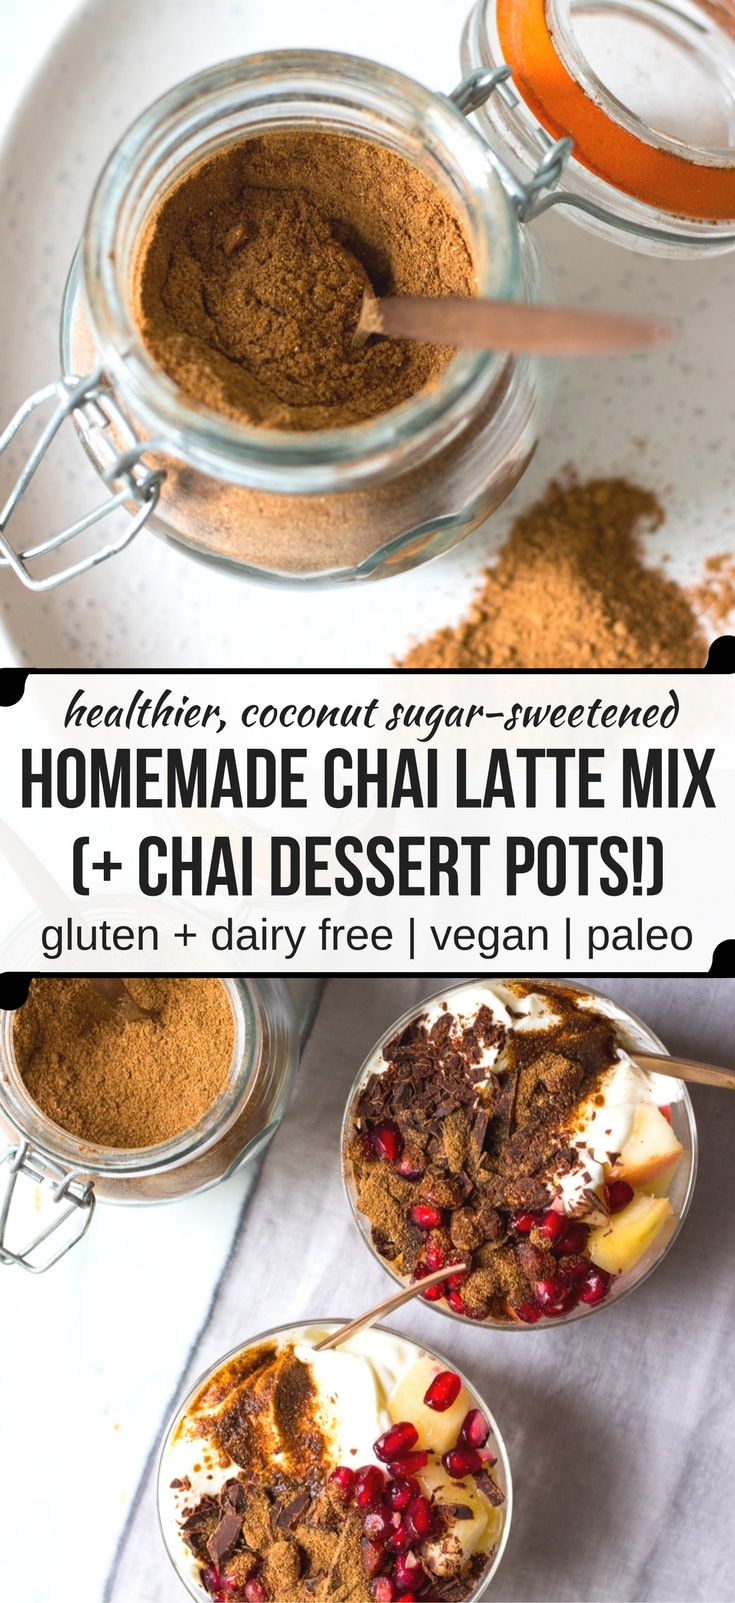 DIY Chai Latte Mix to create a healthier, natural cafe style chai latte at home. Sweetened with coconut sugar, you can adjust the amount of sweetness. Use for a hot drink or for flavouring pancakes and desserts! #chai #chailatte #chaispicemix #healthy